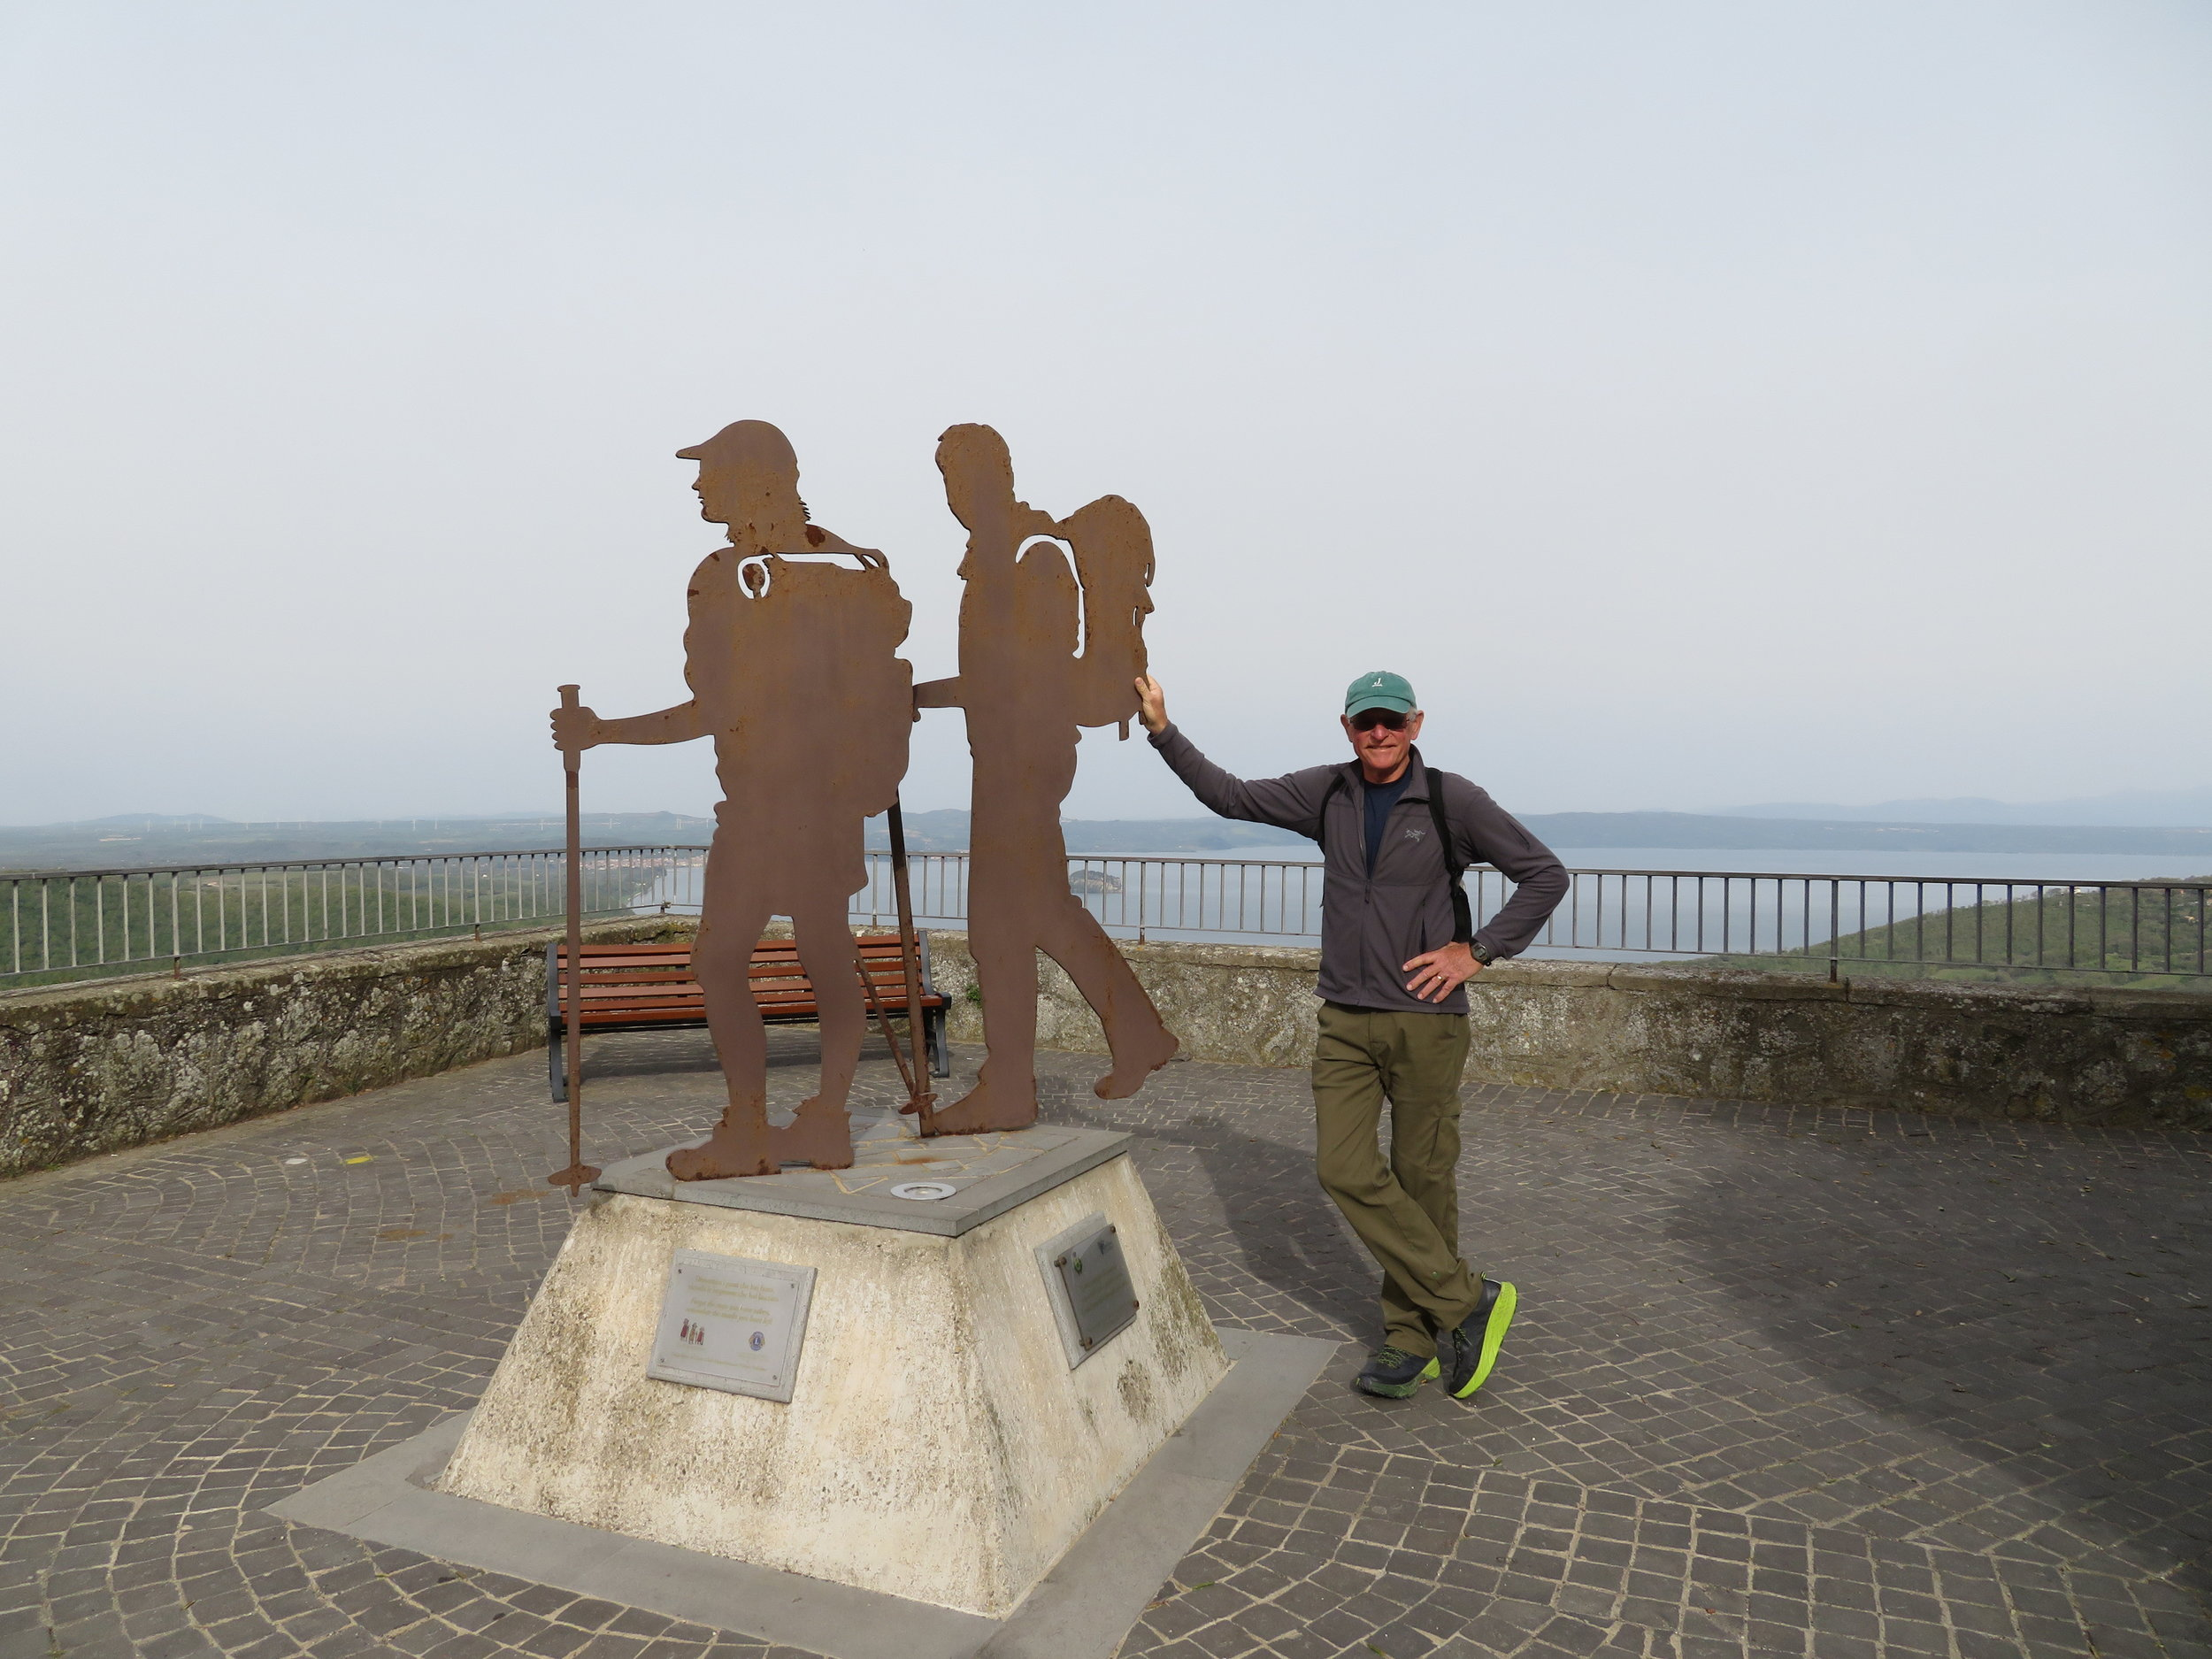 A monument to pilgrims at the top of Rocca di papi